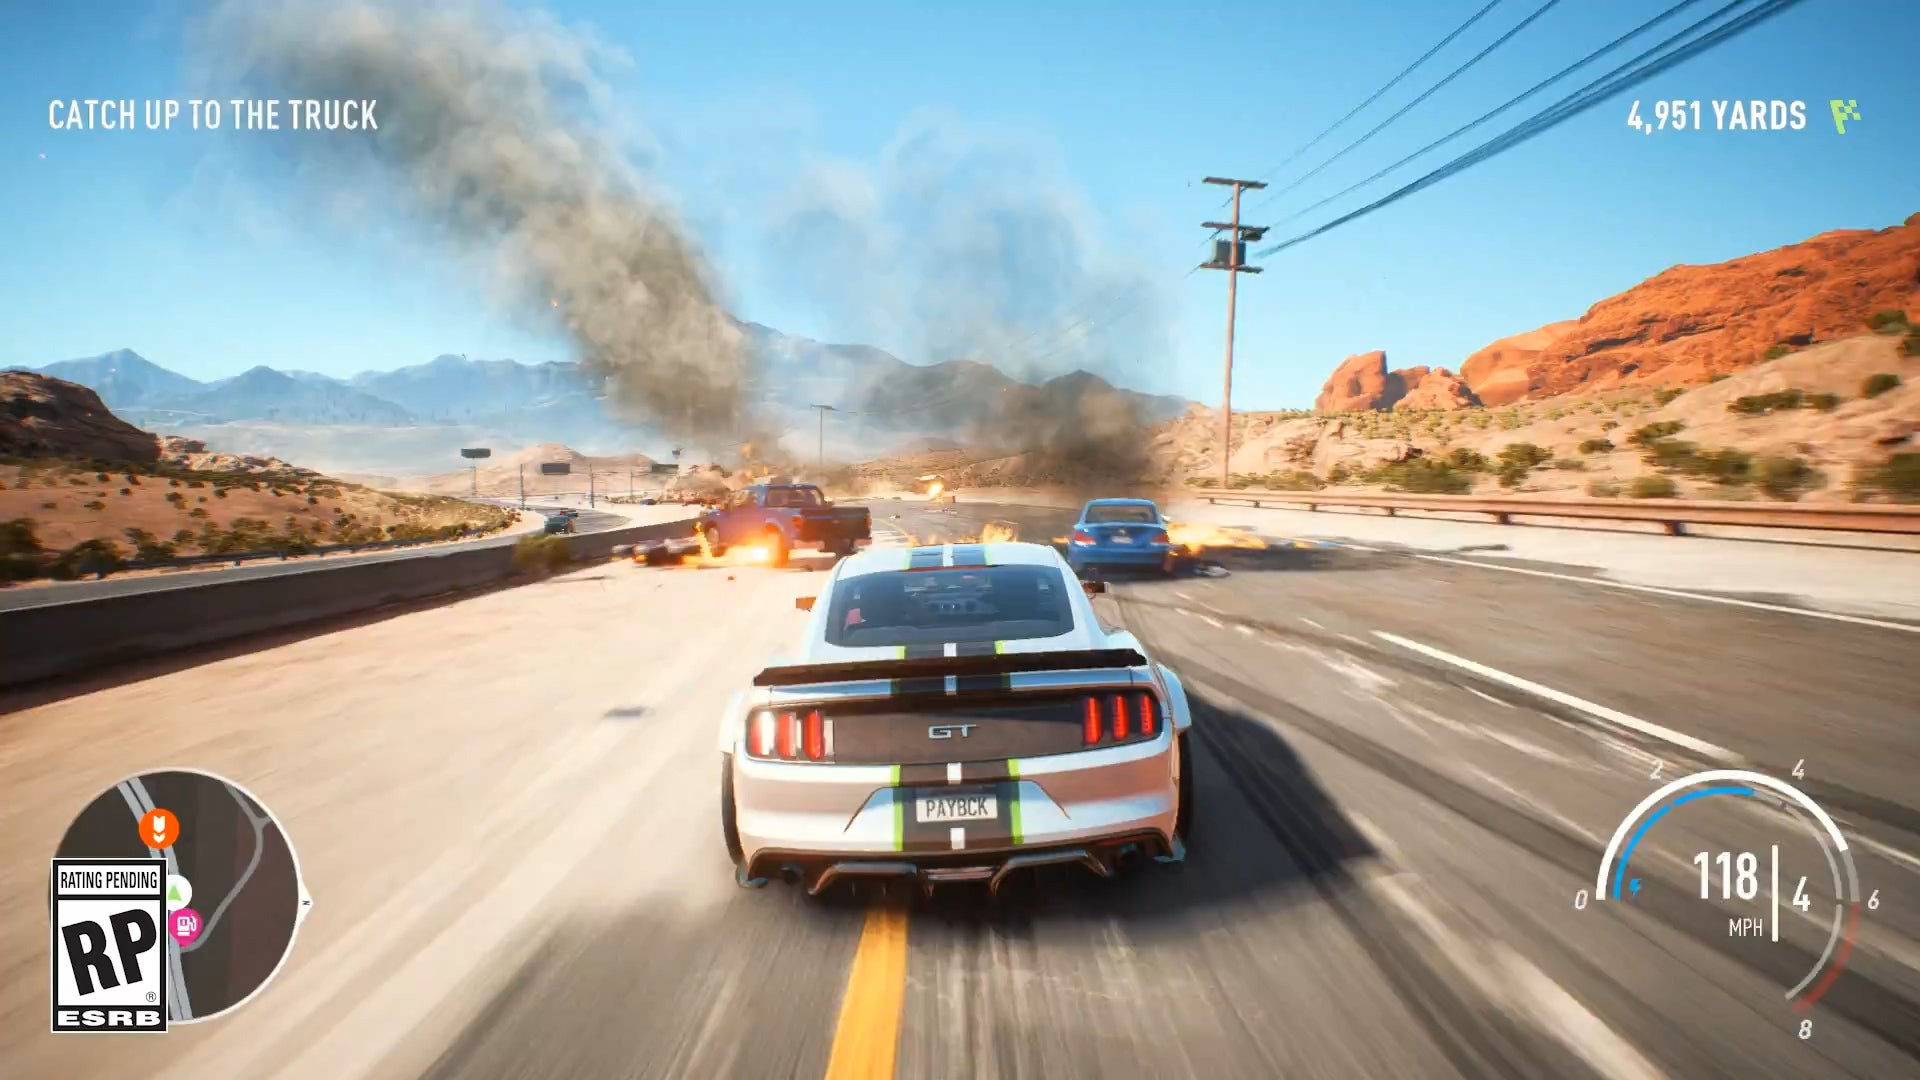 Hd Nfs Cars Wallpapers Need For Speed Payback Highway Heist Trailer Idg Tv